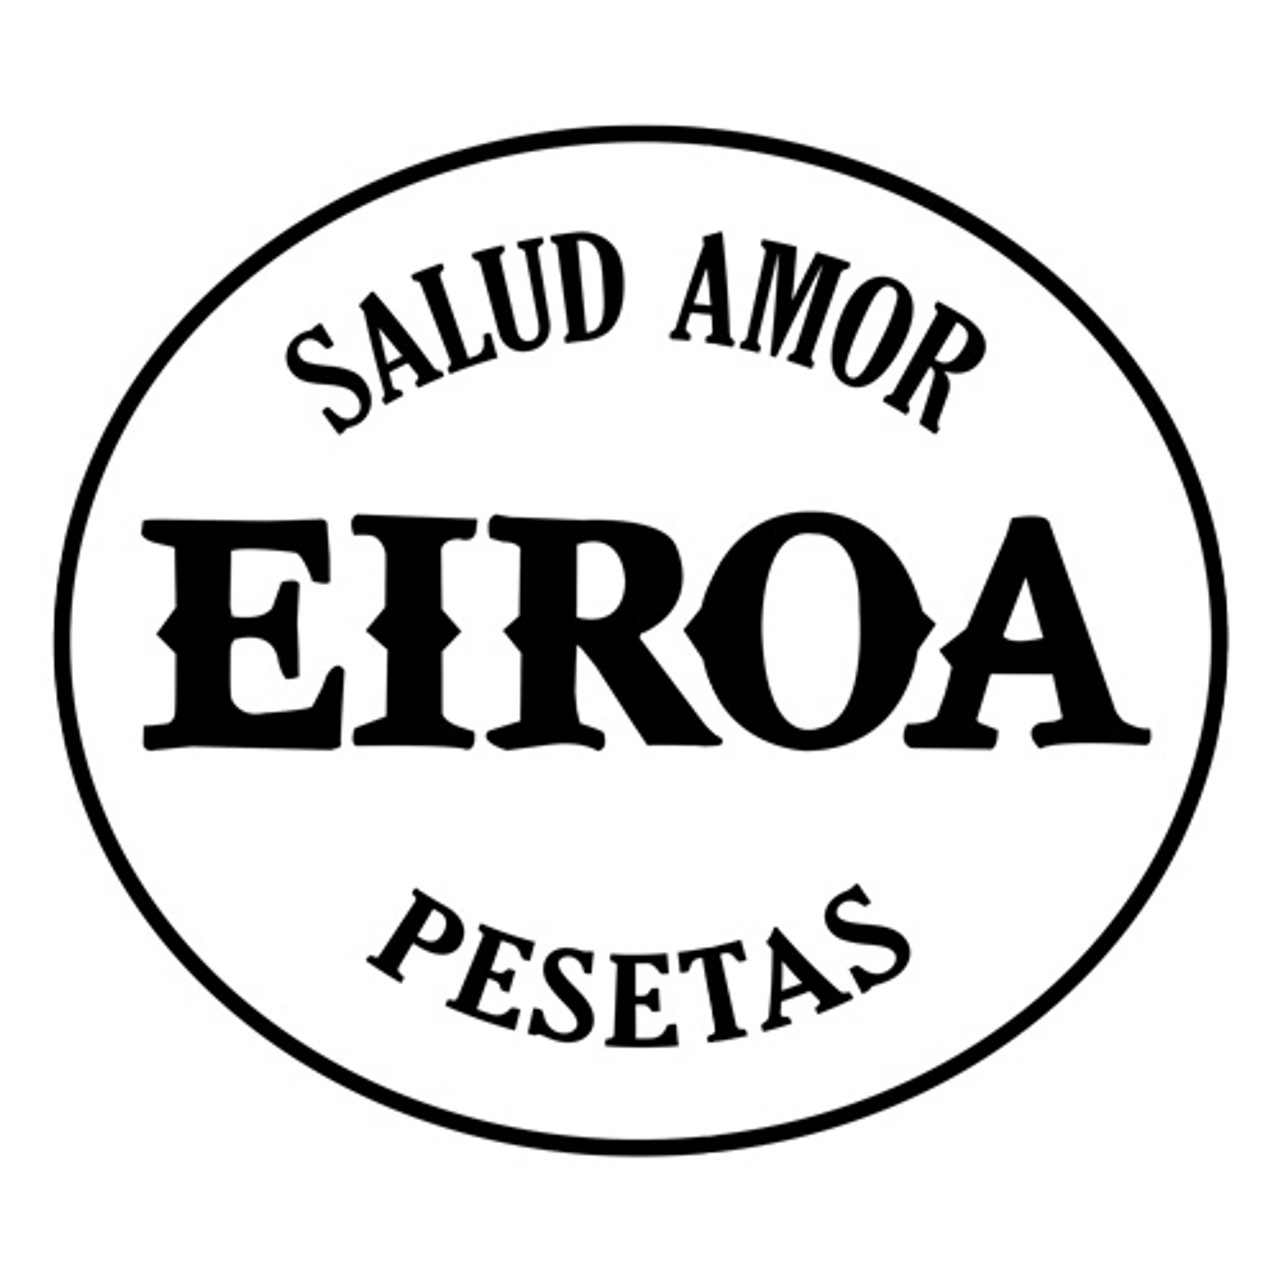 Eiroa The First 20 Years 46 X 6 Cigars - 6 x 46 (Box of 20)